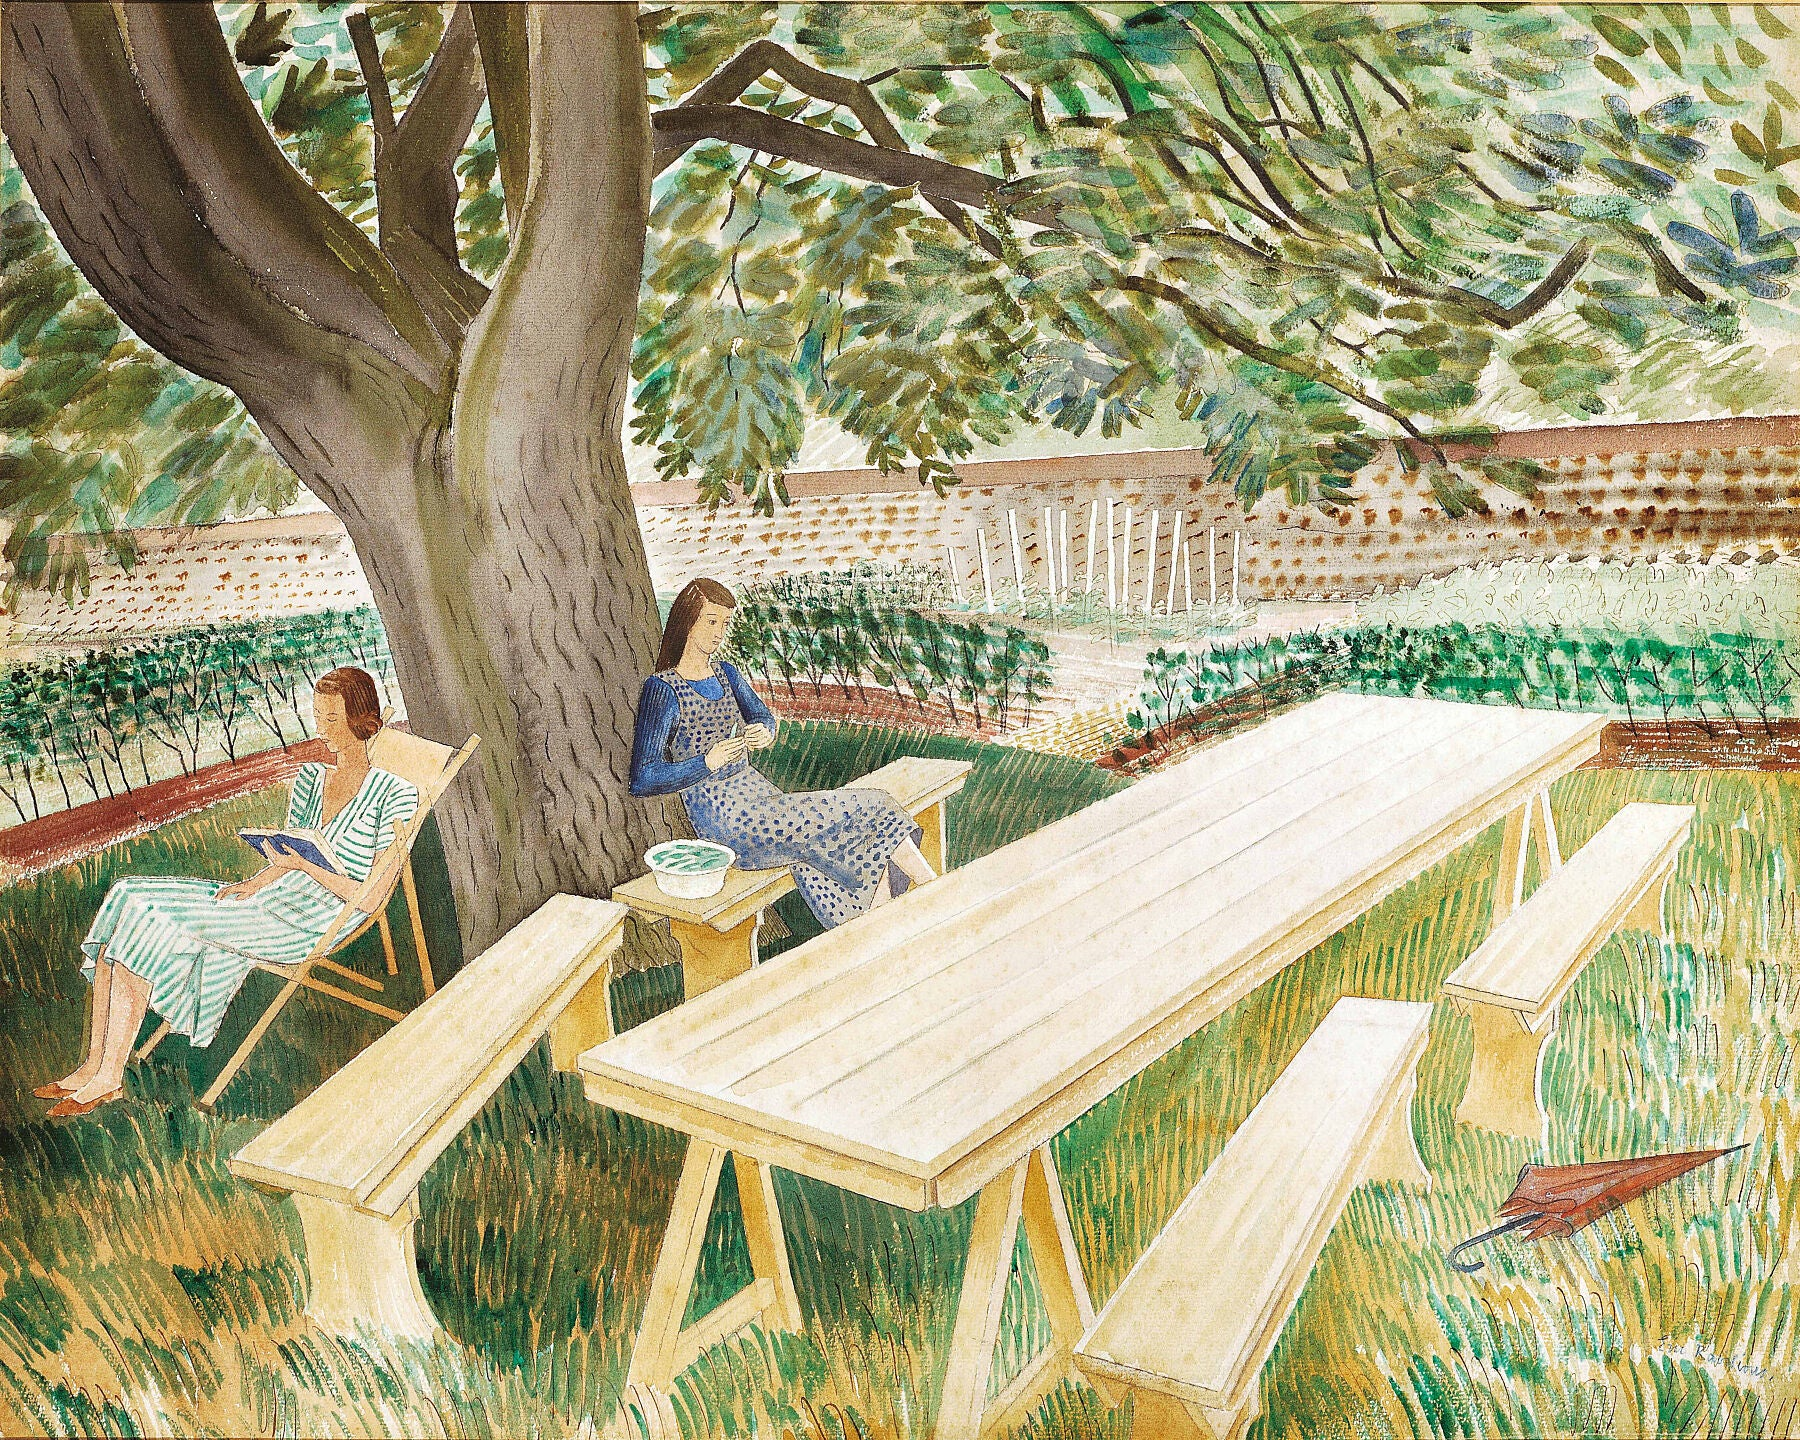 Two women in a garden 1933 Watercolour. Painted at Brick House by Eric Ravilious. Depicts the artist's wife Tirzah Garwood (right; shelling peas) and Charlotte Bawden, wife of the artist Edward Bawden. The two couples shared the house from 1932-1934.